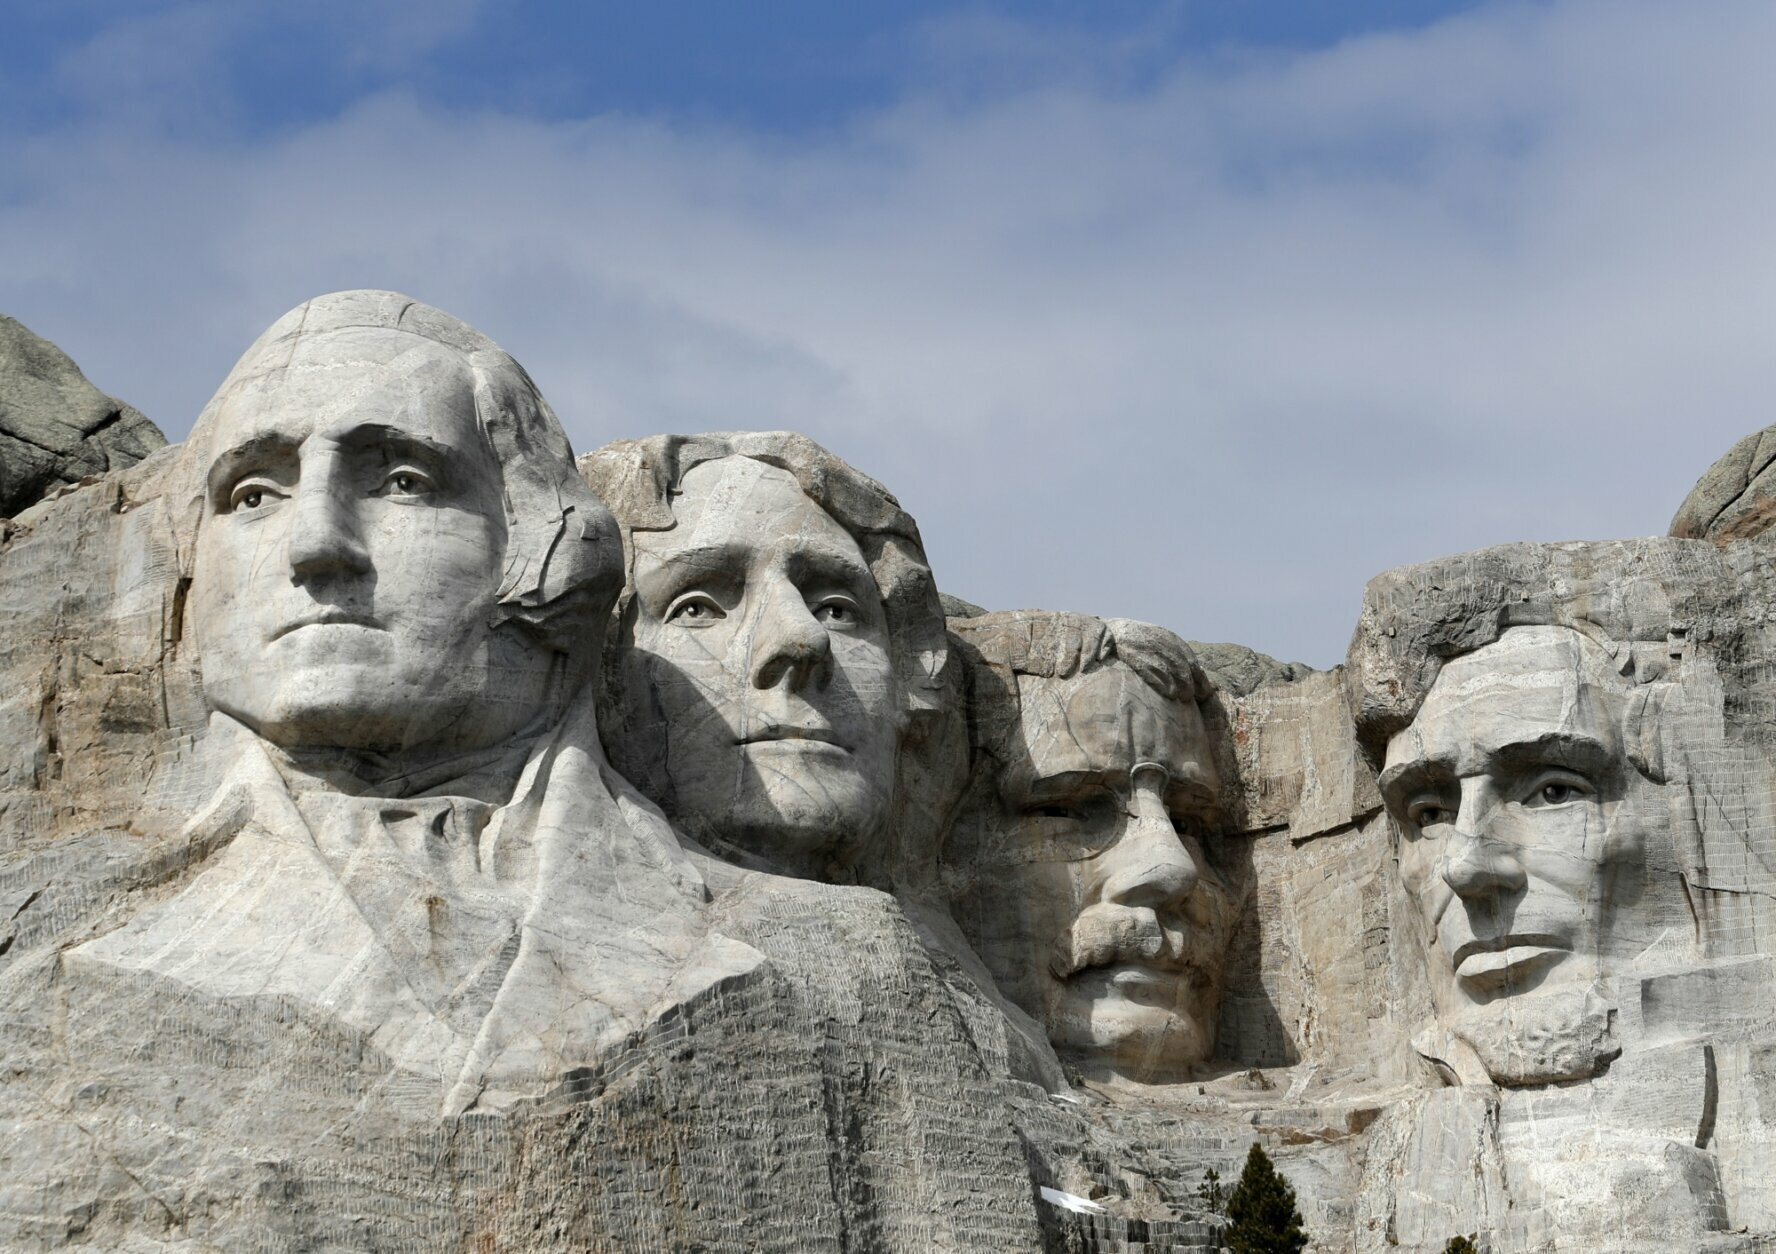 FILE - This March 22, 2019, file photo shows Mount Rushmore in Keystone, S.D. President Donald Trump will begin his Independence Day weekend on Friday with a patriotic display of fireworks at Mount Rushmore National Memorial before a crowd of thousands. (AP Photo/David Zalubowski, File)